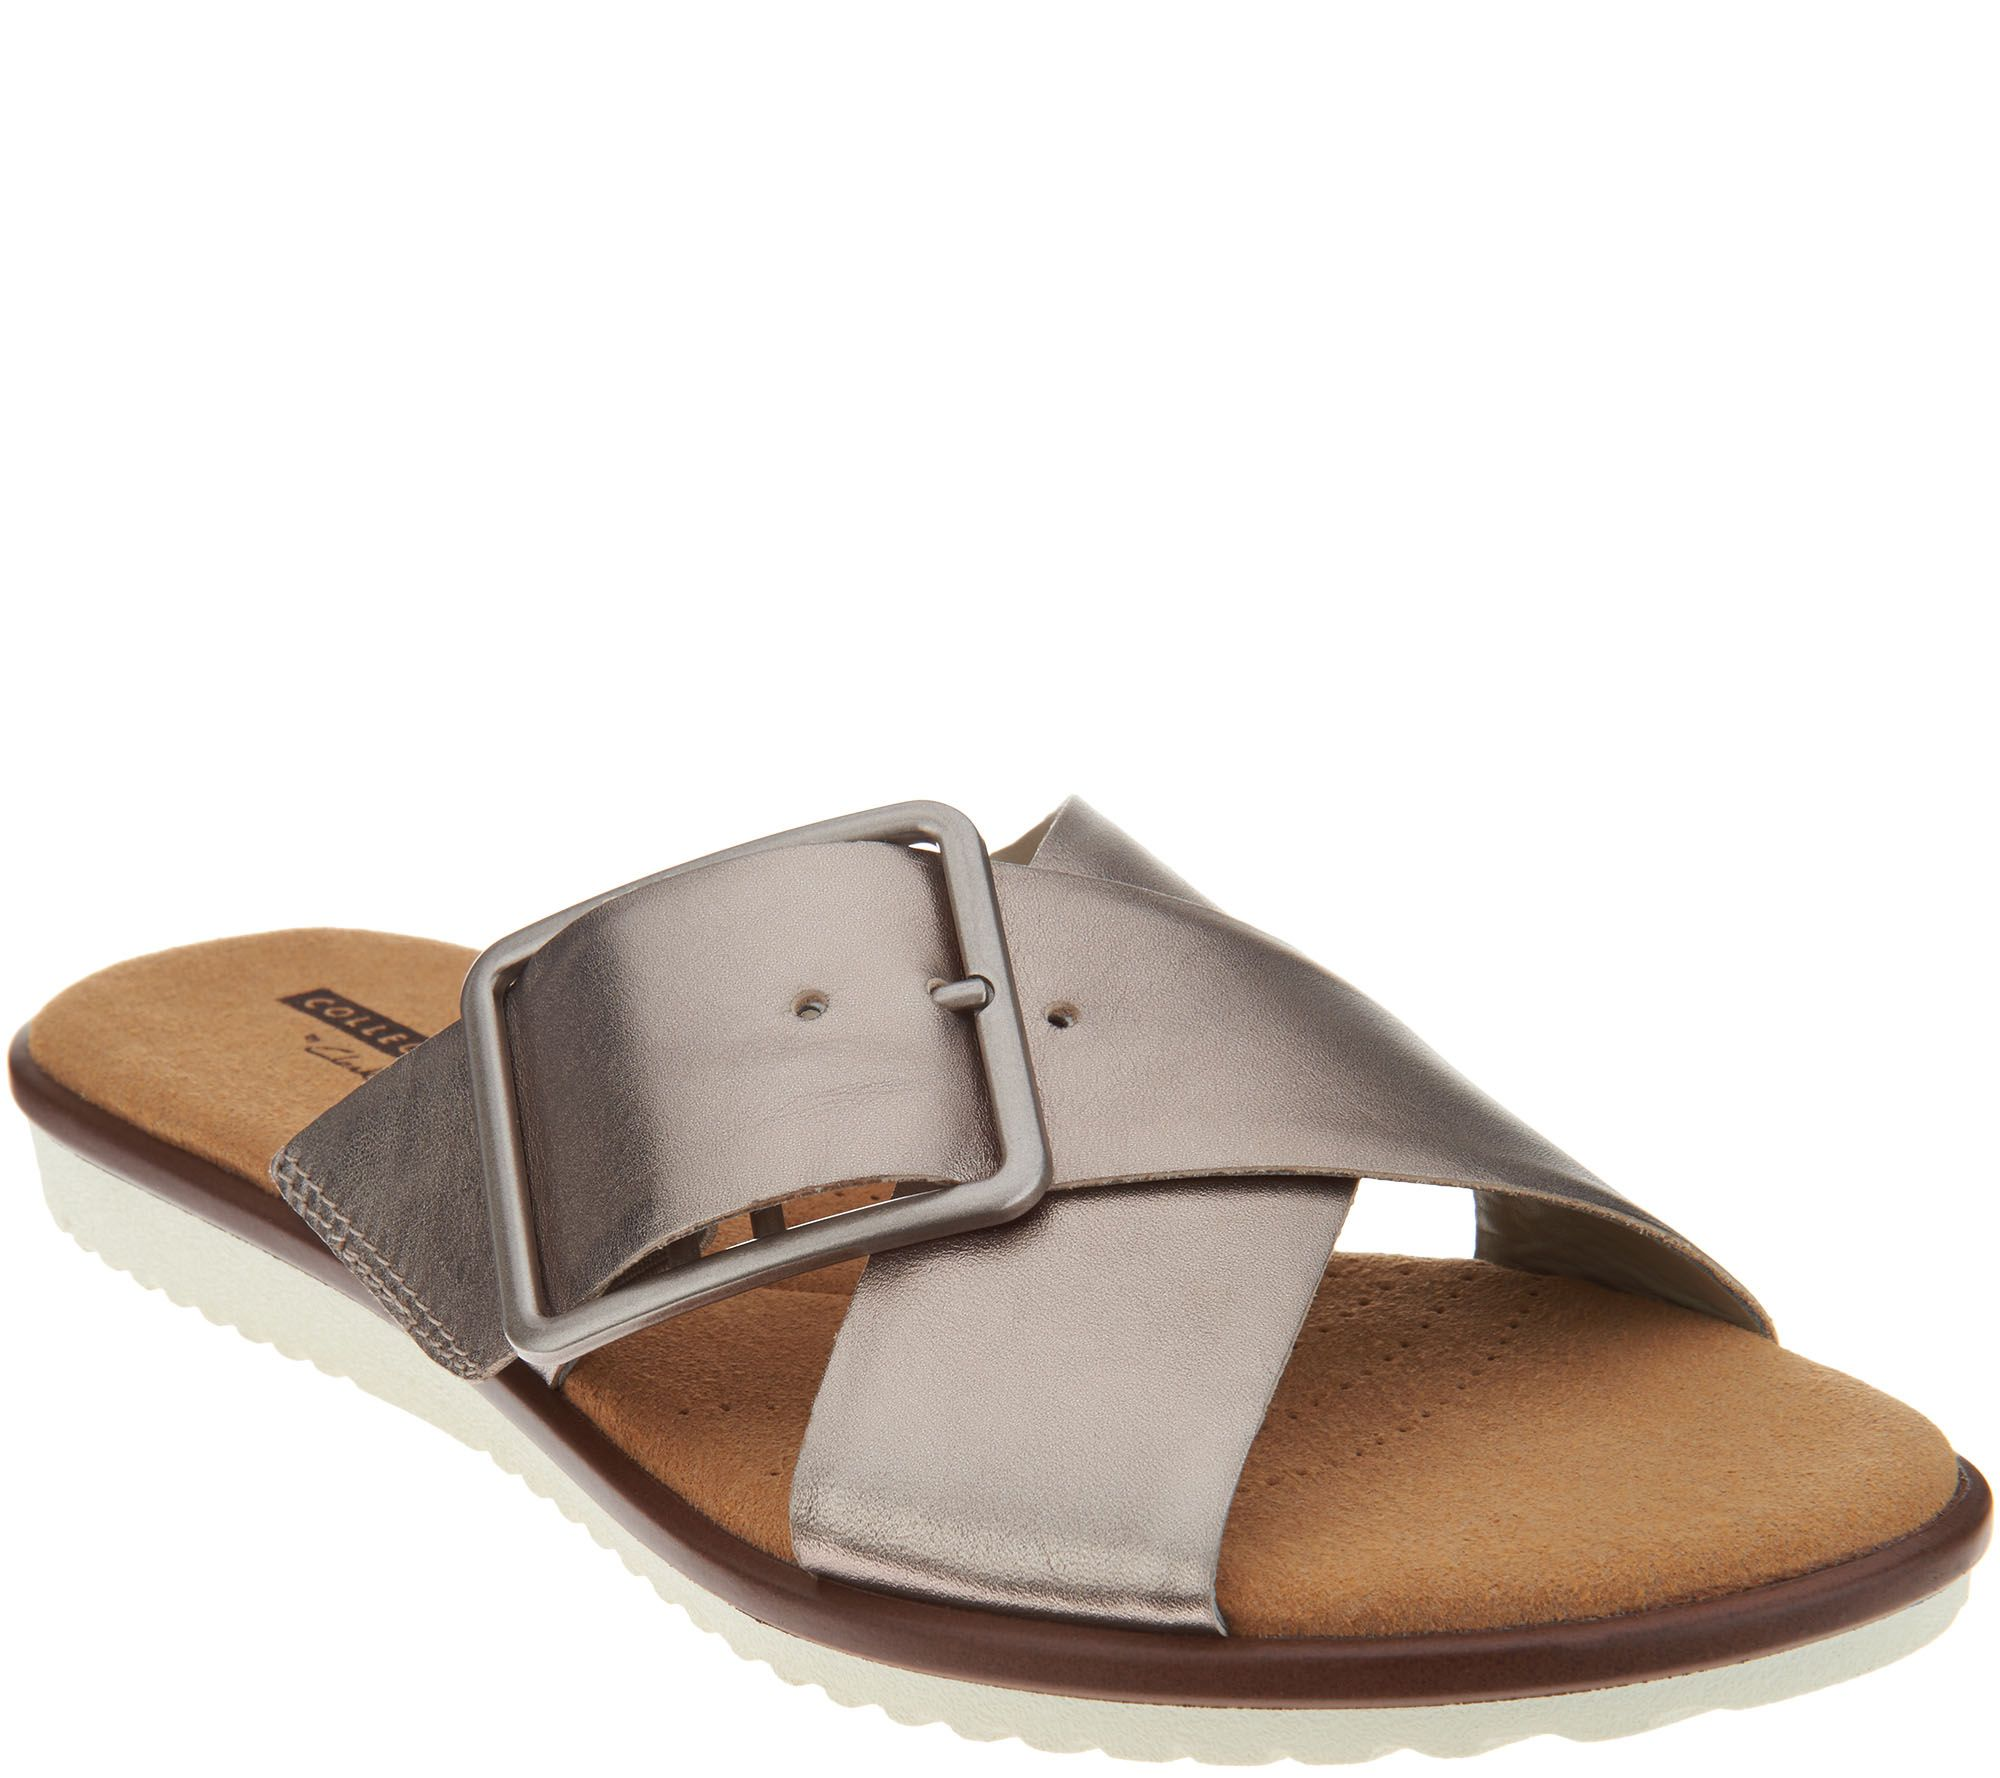 5a4bf36c451 Clarks Leather Cross Band Buckle Slides - Kele Heather - Page 1 — QVC.com